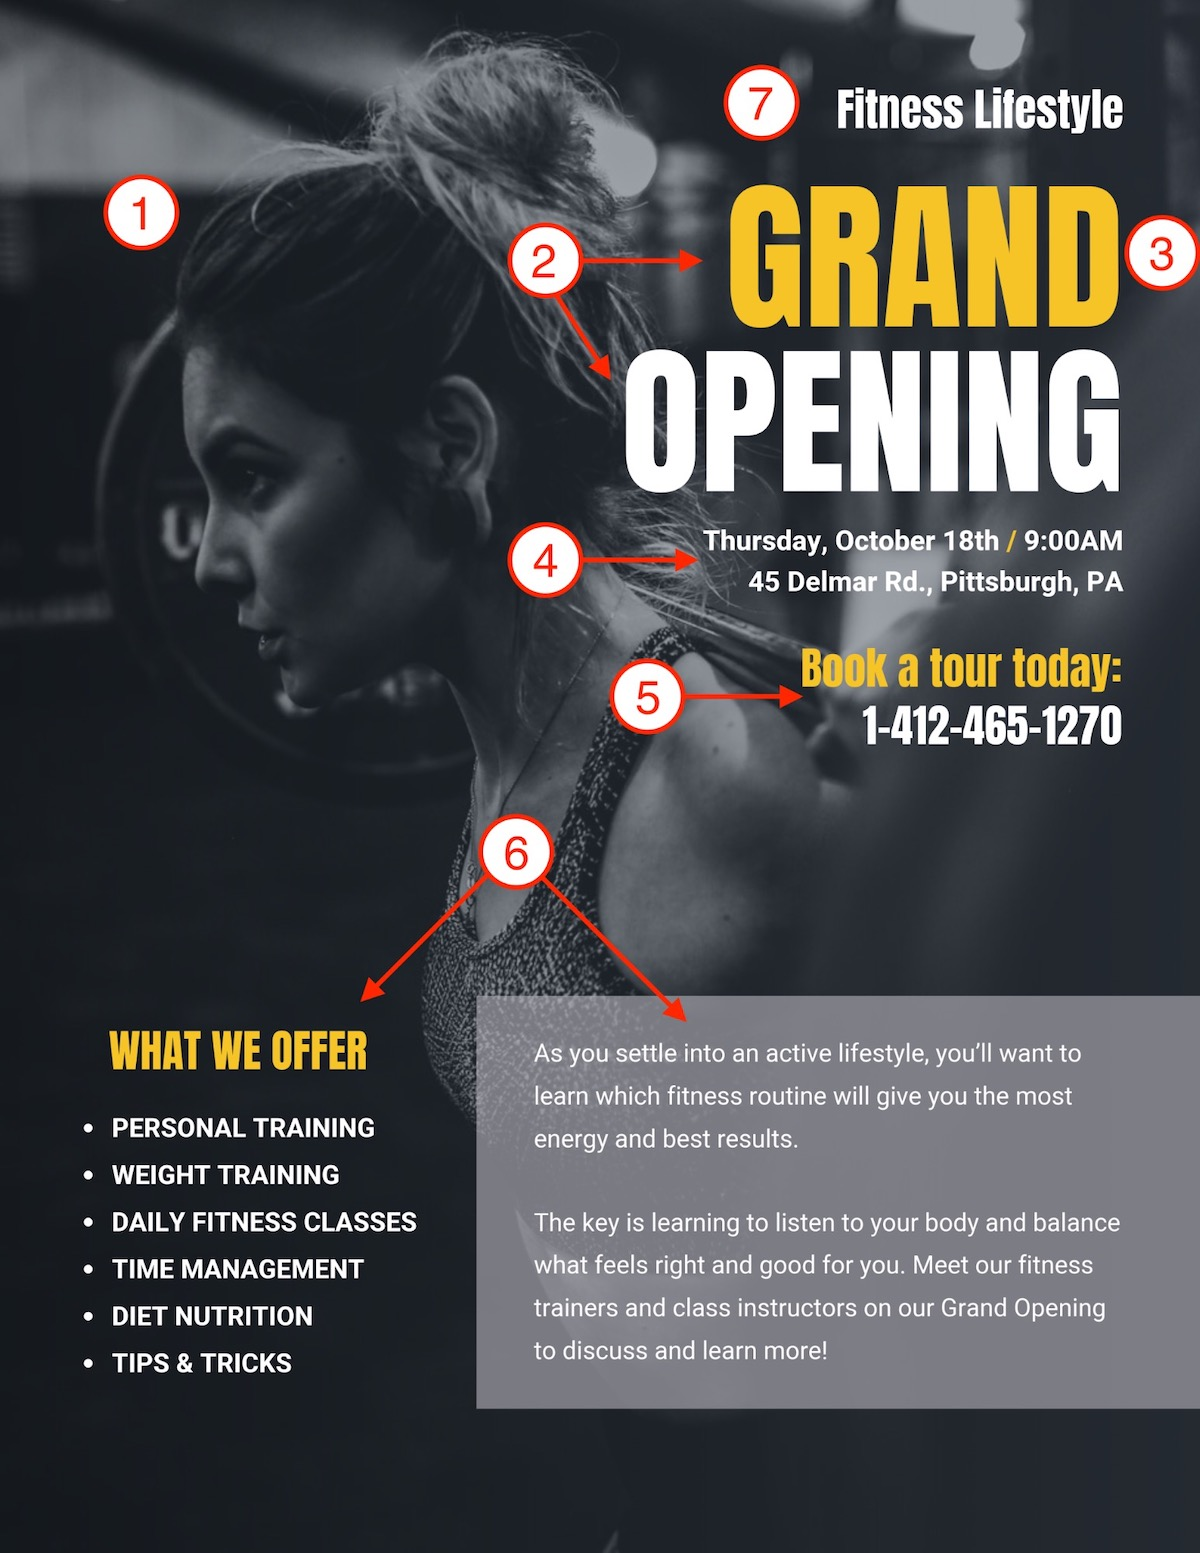 Grand Opening Event Poster Design Template1